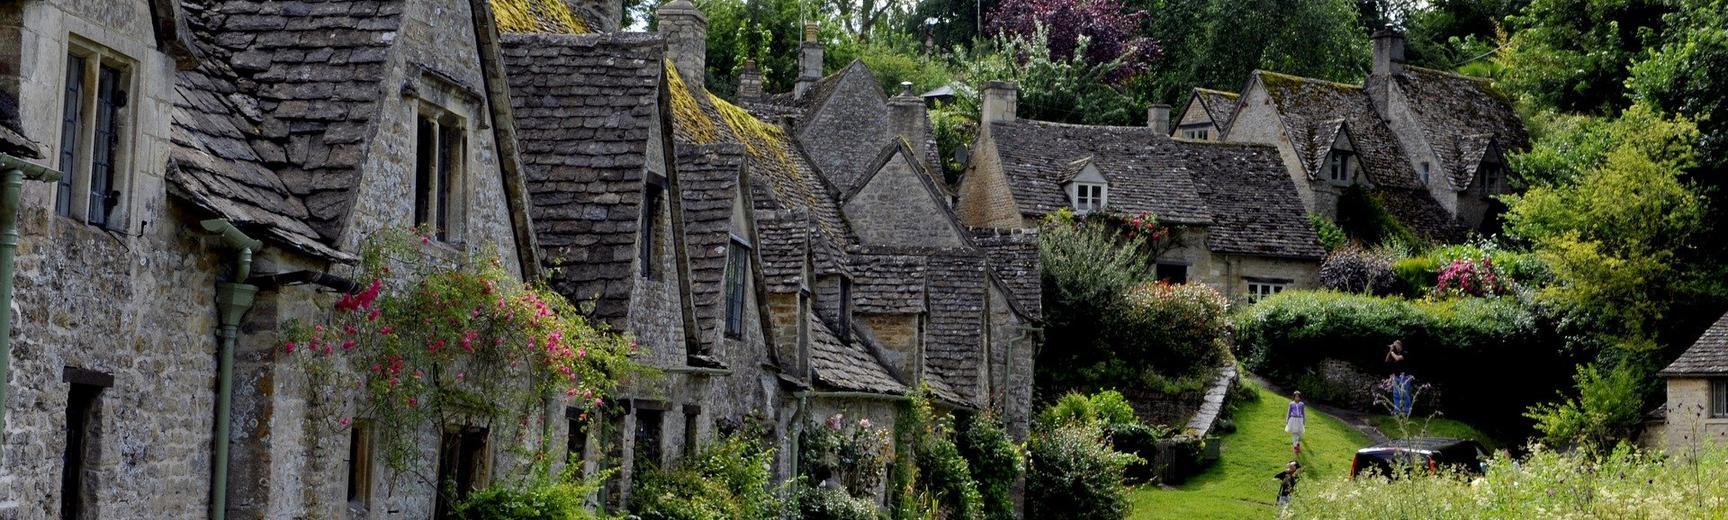 A street in a Cotswold village